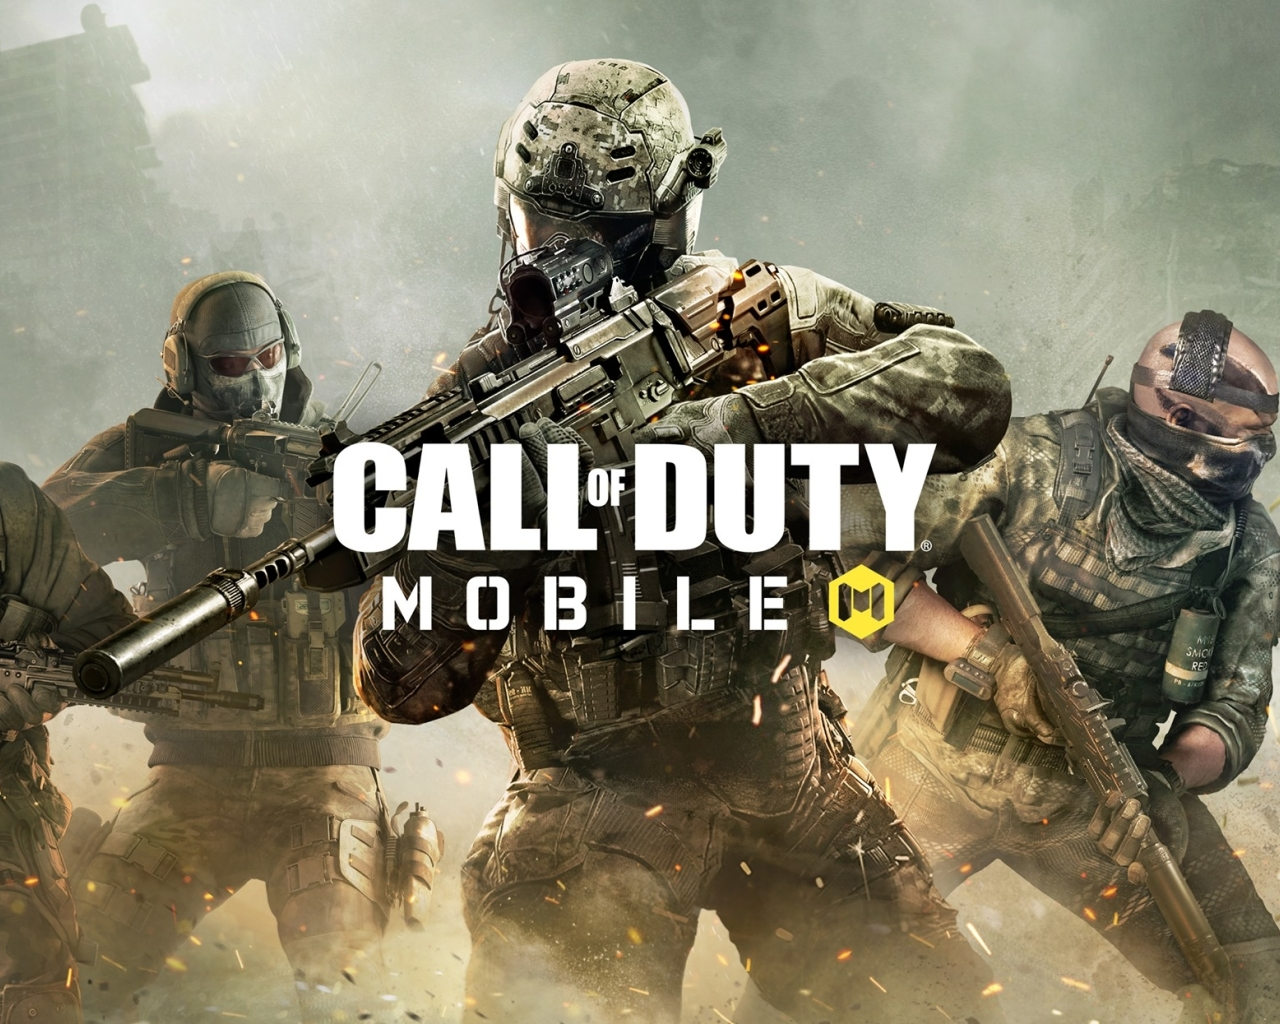 1280x1024 Call Of Duty Mobile Game 1280x1024 Resolution Wallpaper Hd Games 4k Wallpapers Images Photos And Background